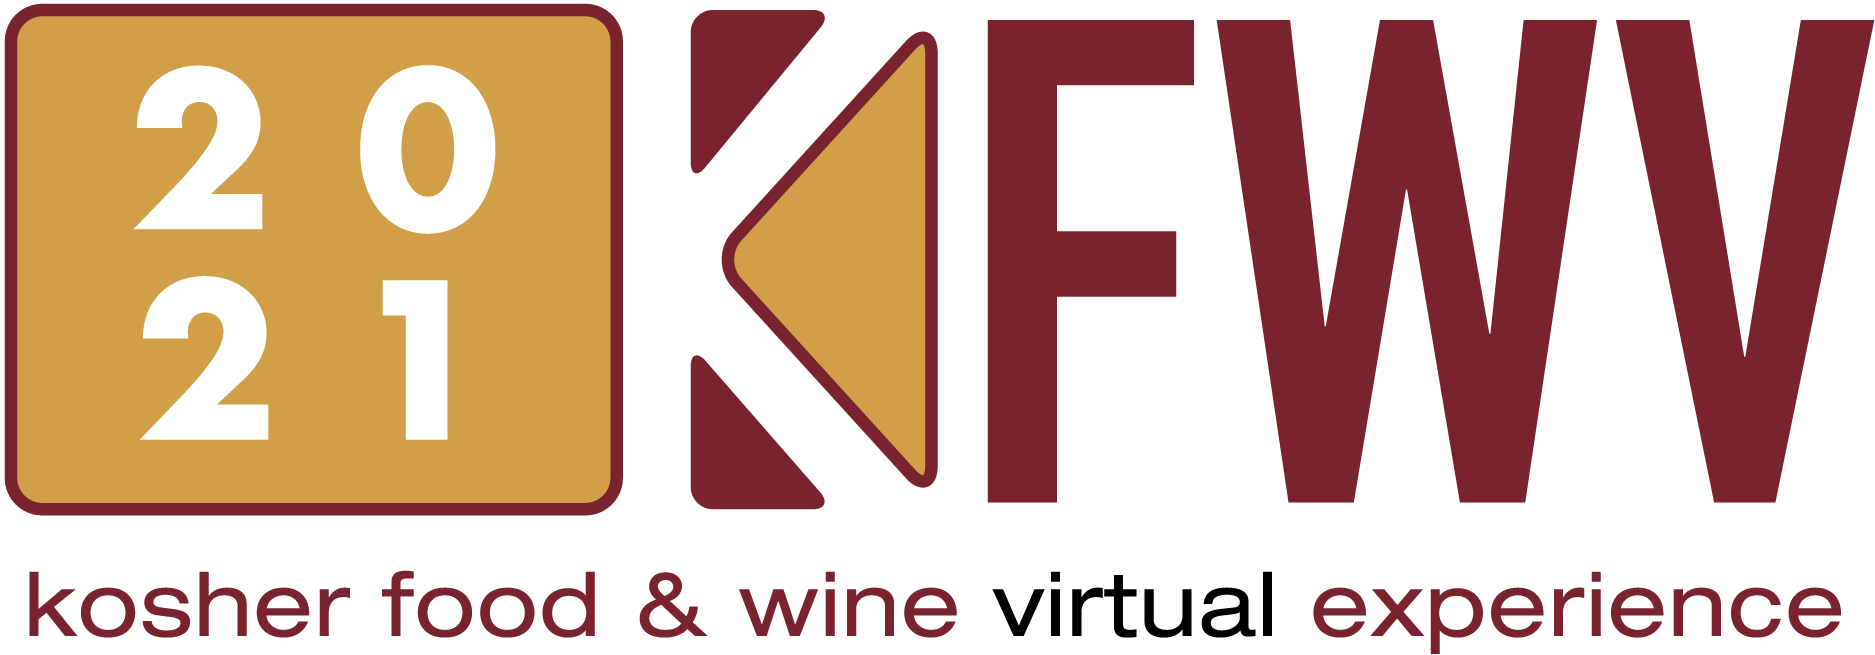 February 21, 2021: 15th Annual Kosher Food & Wine Experience